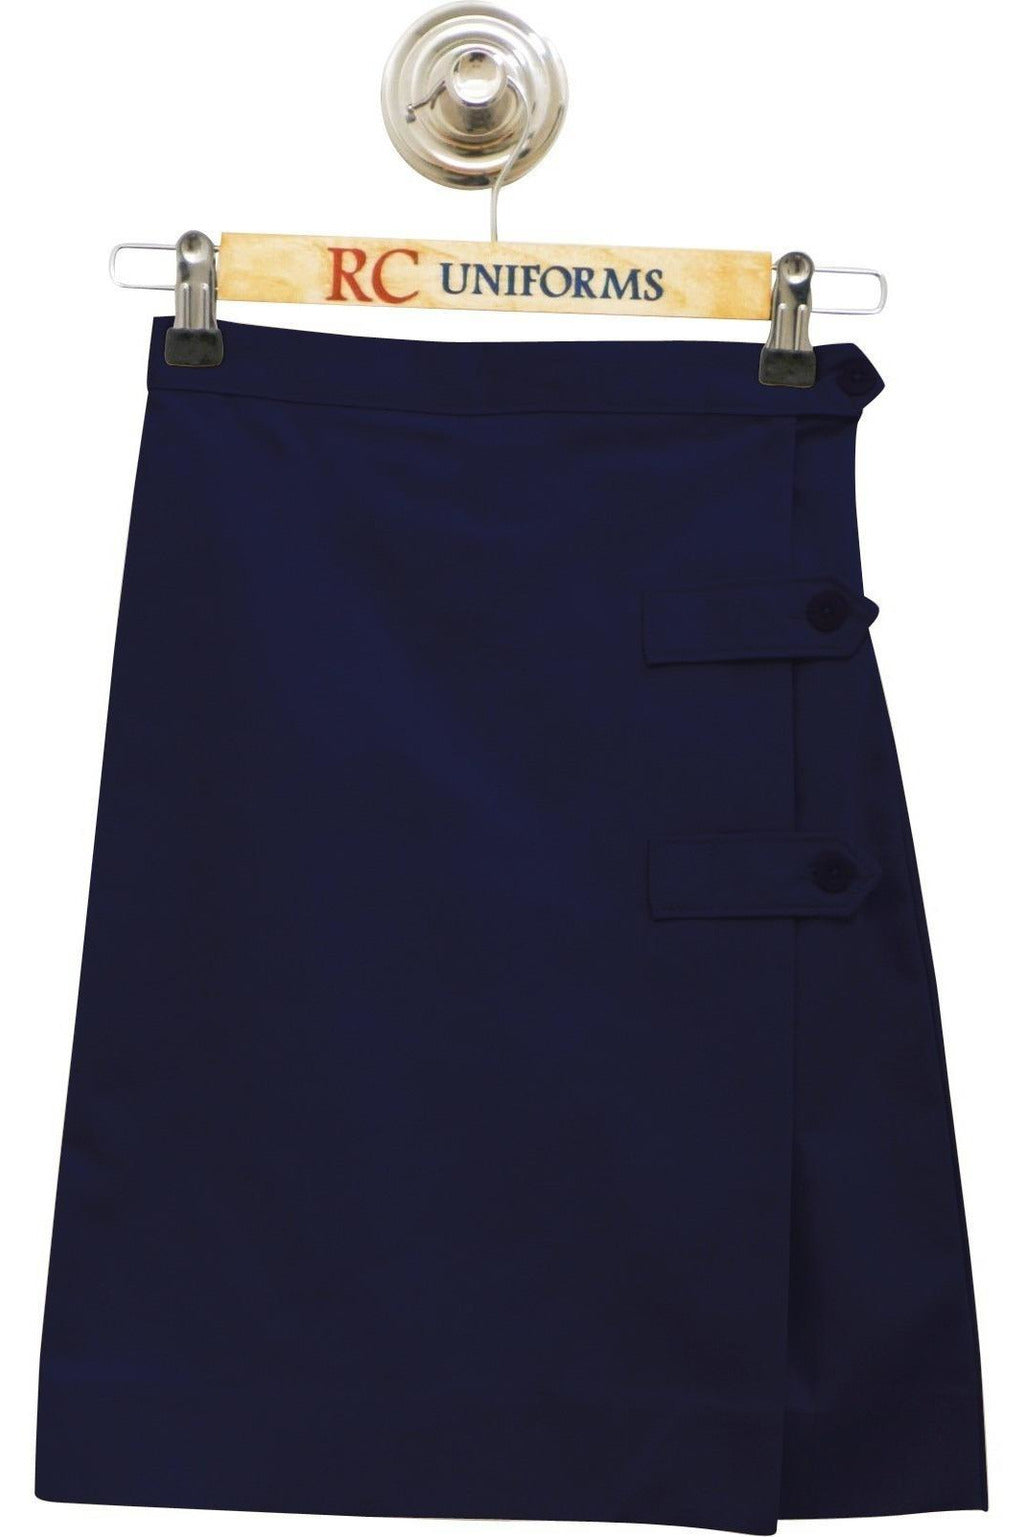 Navy Tab Culotte - RC Uniforms